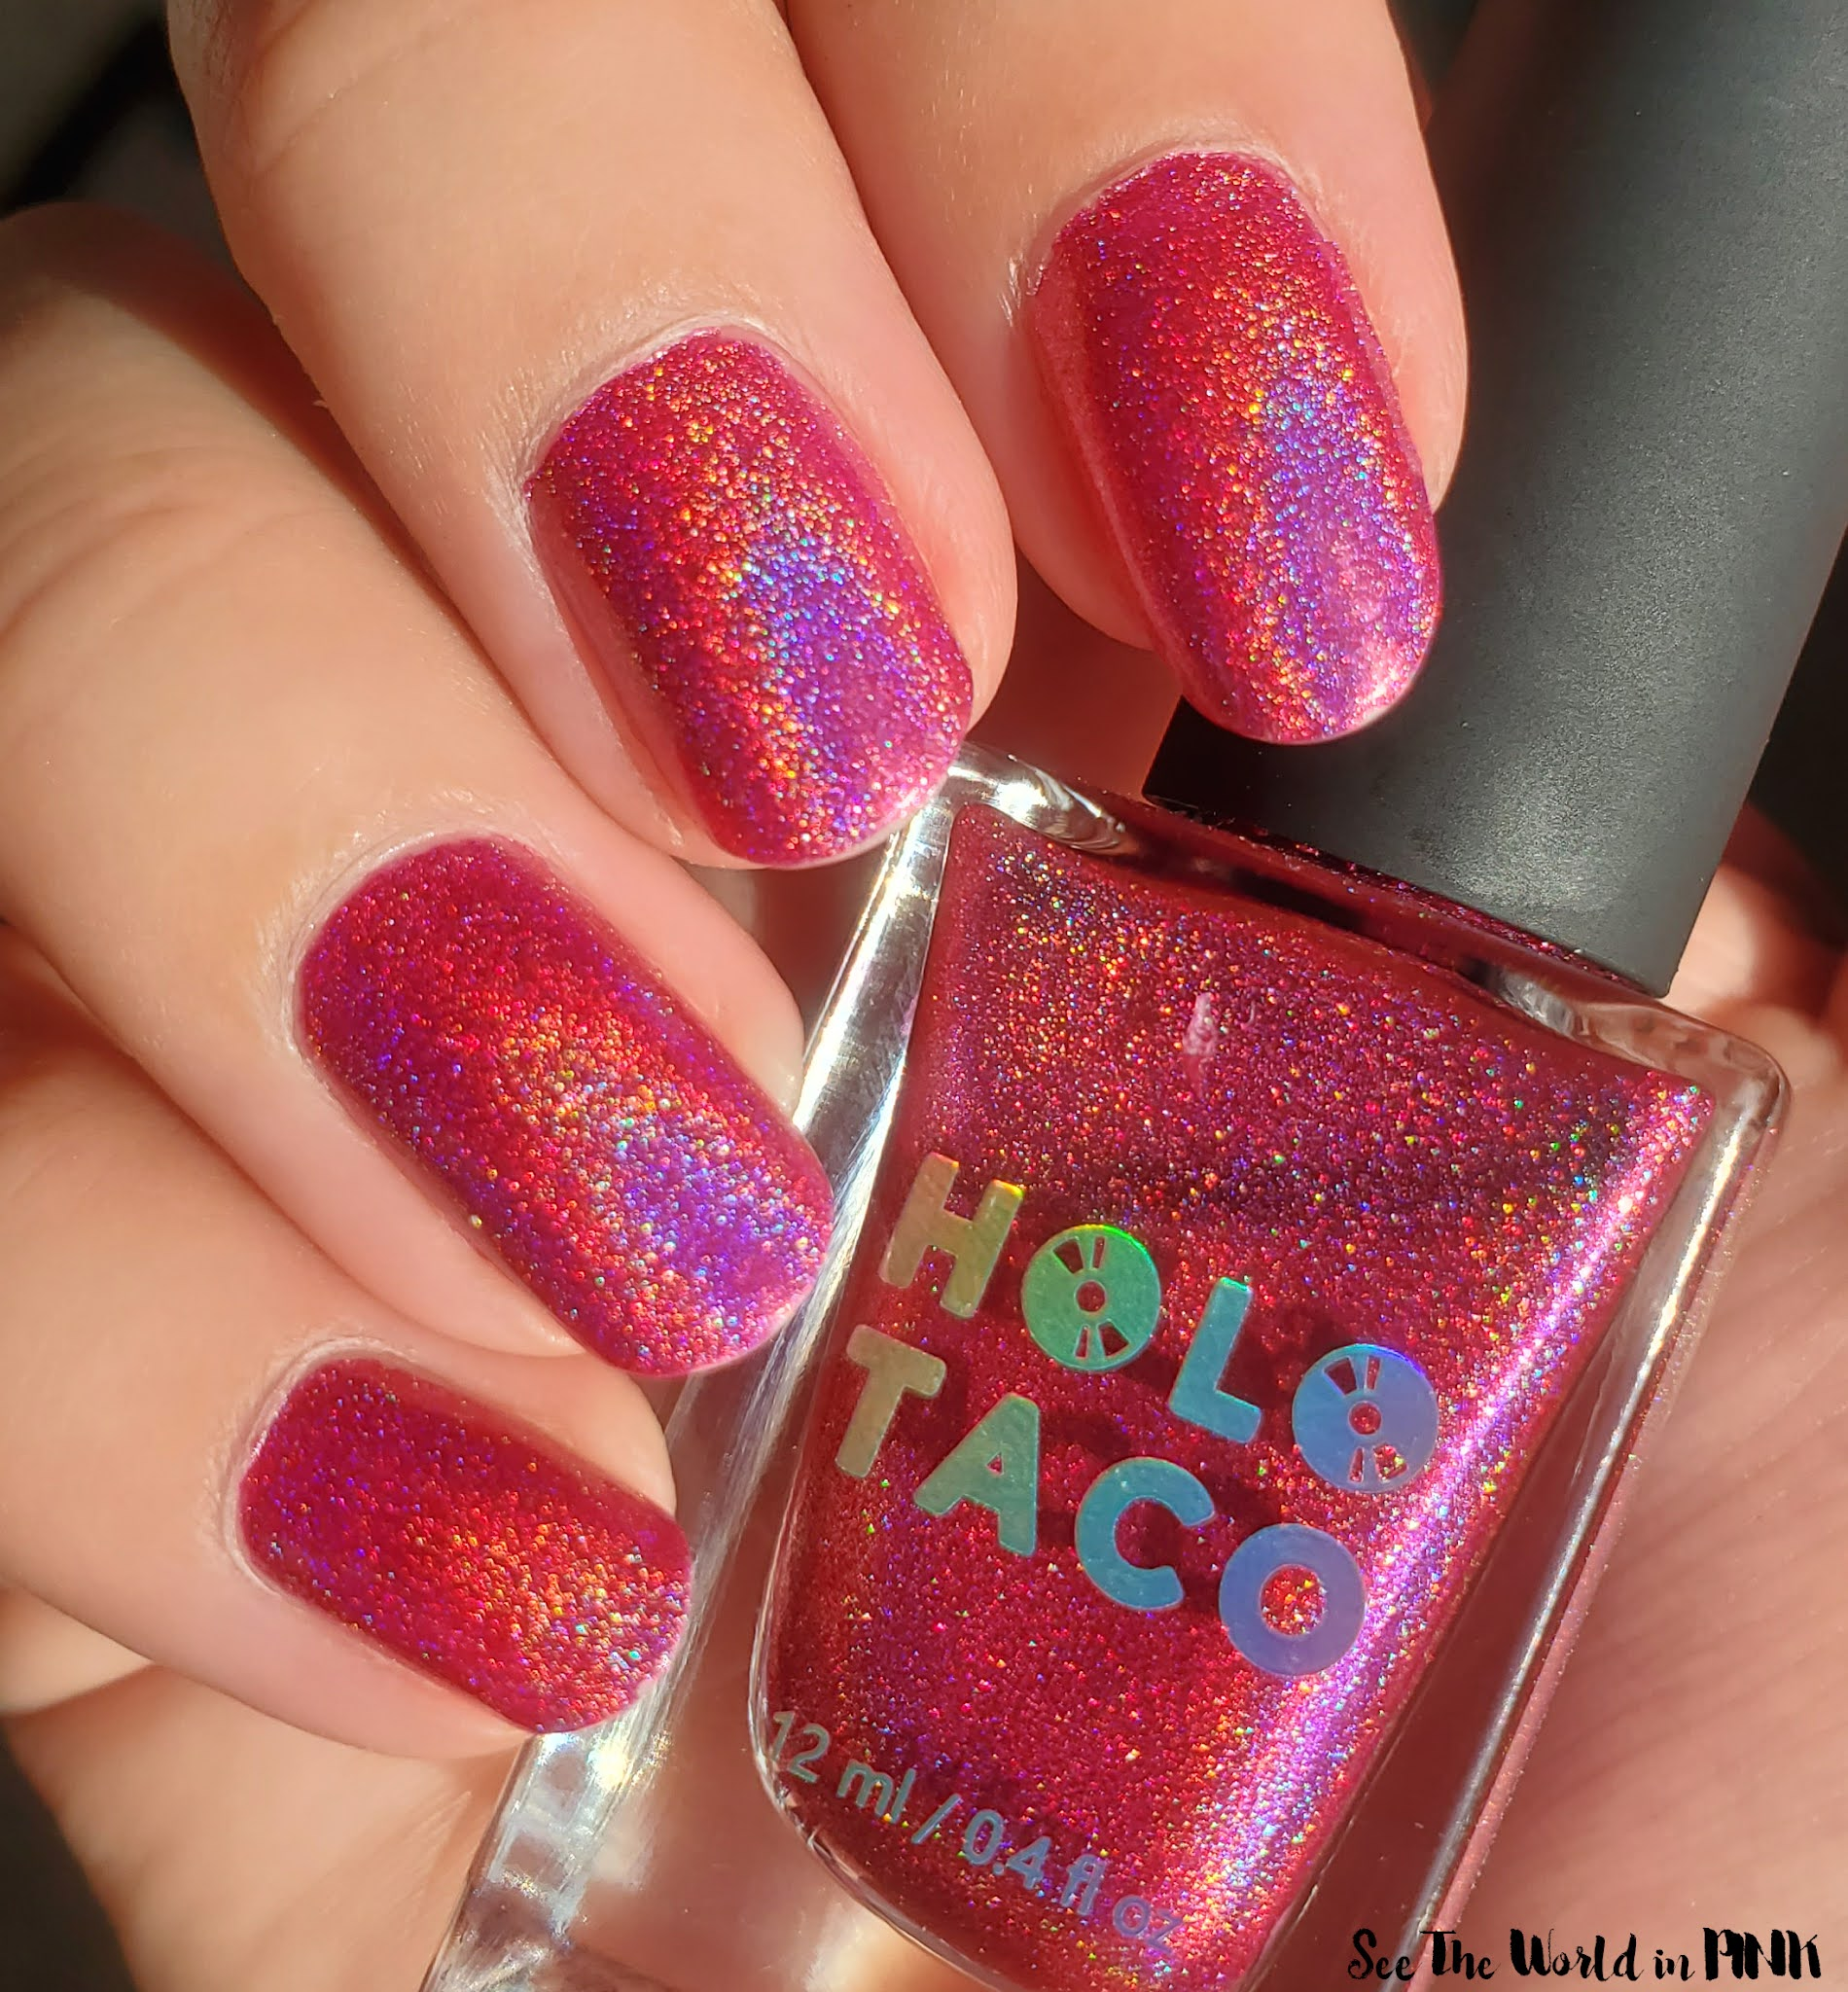 Manicure Monday - Holo Taco Hot-Wire Pink